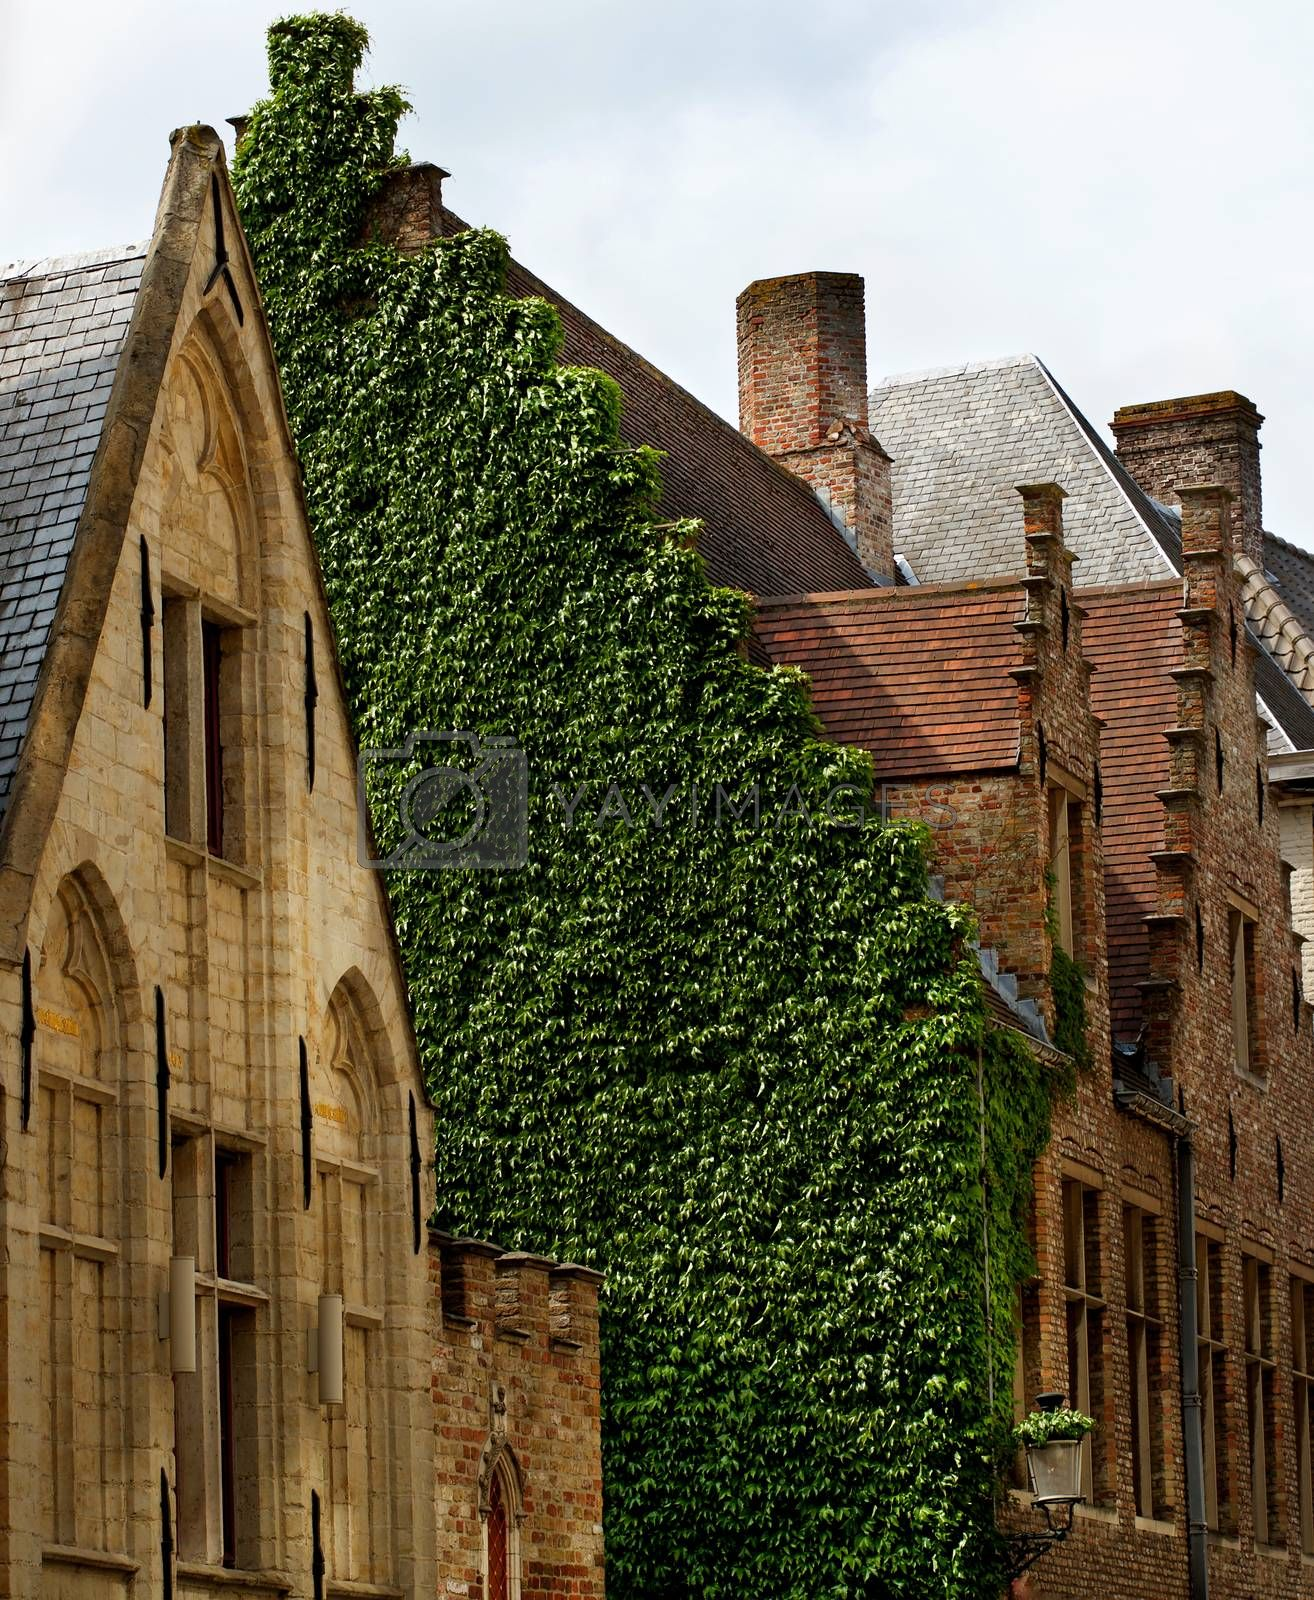 Old Medieval Houses with Wall of Ivy against Cloudy Sky Outdoors. Bruges, Belgium